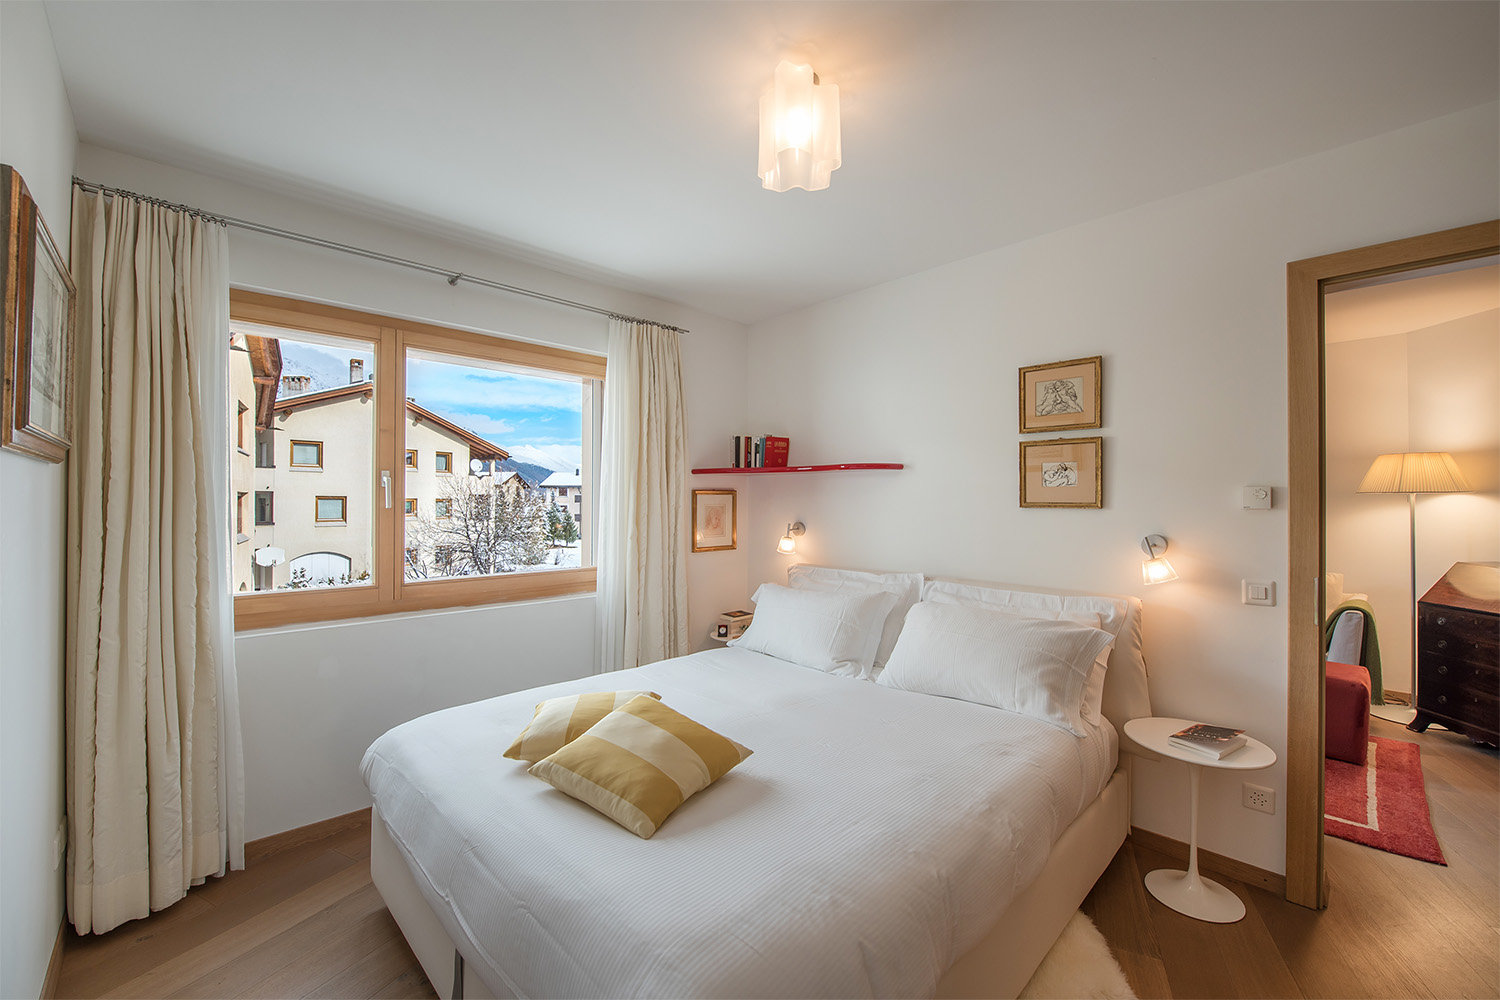 Apartment for sale in Celerina, Switzerland alps-bedroom